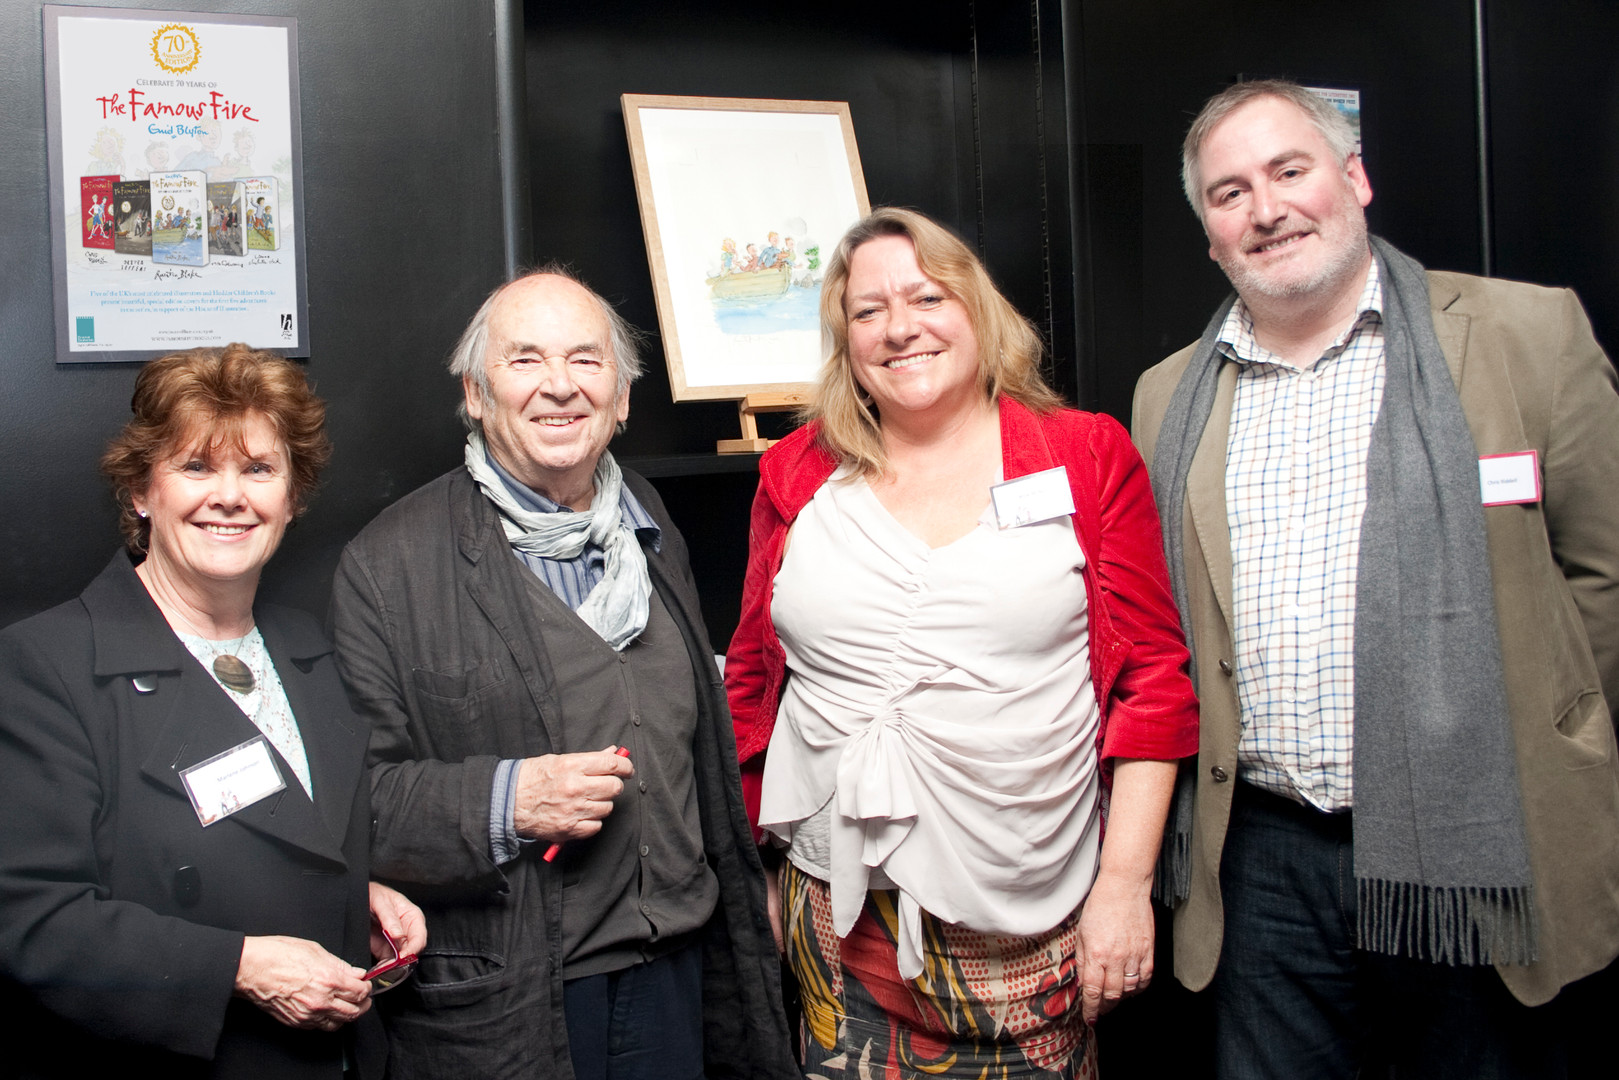 Quentin Blake and Chris Riddell